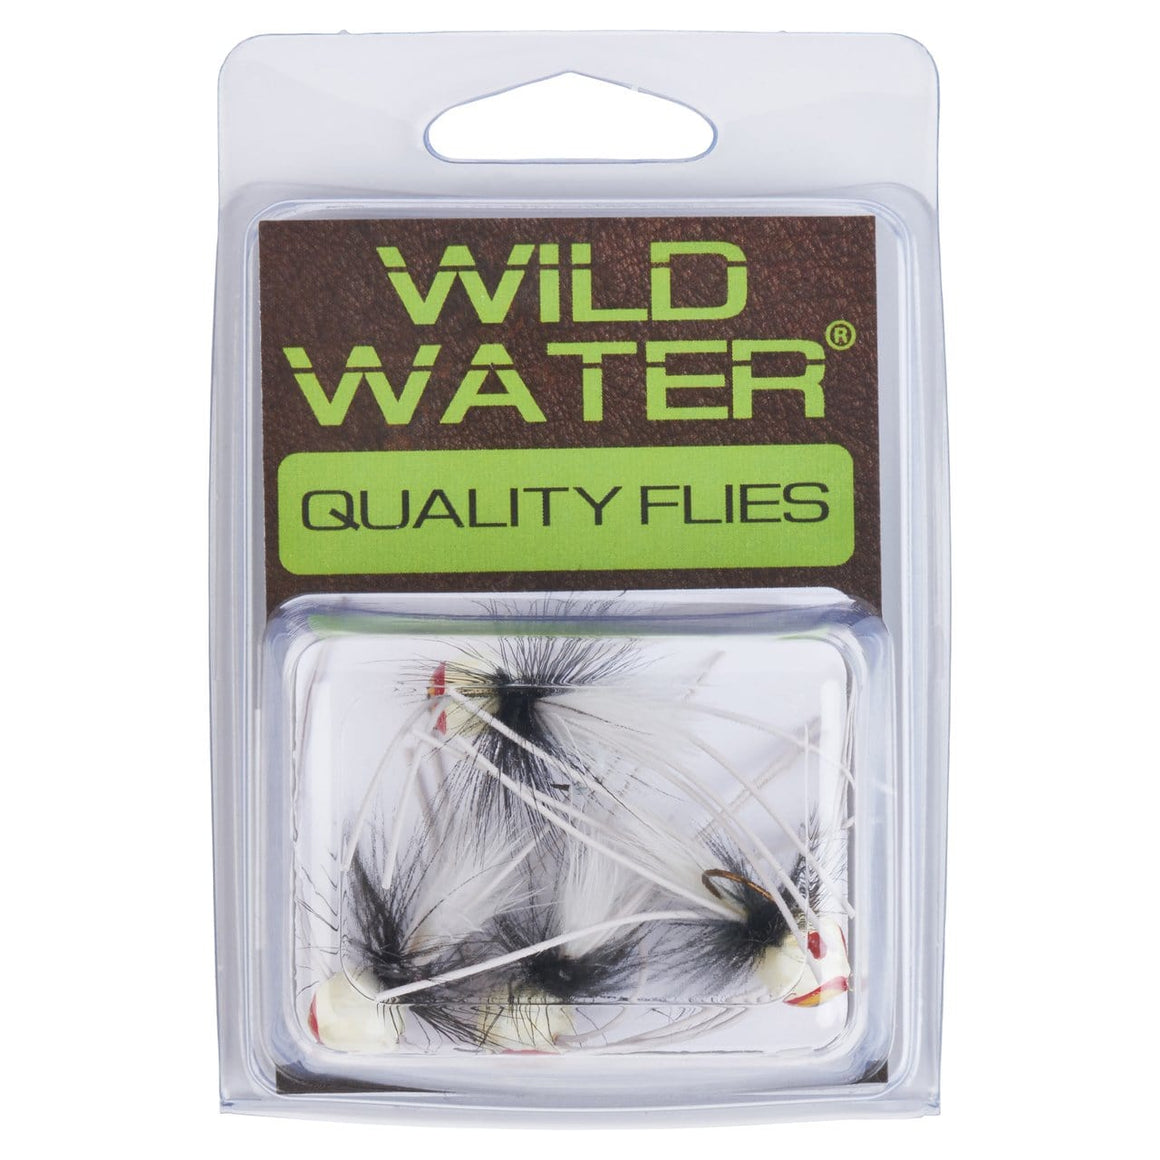 Wild Water Black and White Rollie Pollie Popper by Pultz Poppers, Size 8, Qty. 4